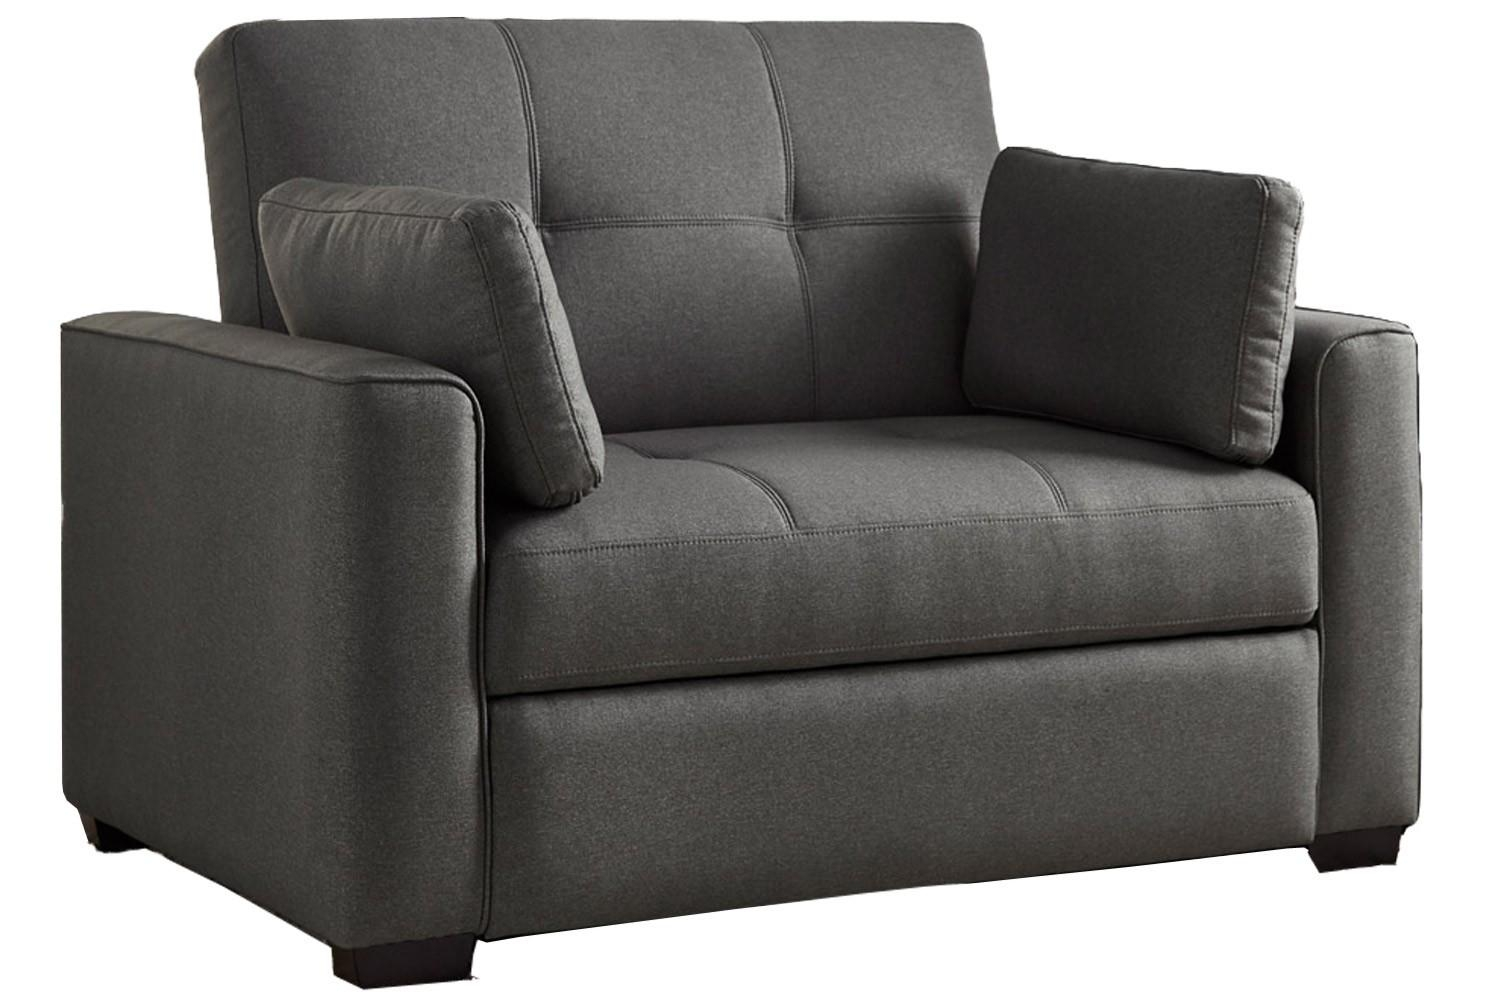 Sofas Center : Twin Sofa Chairs For Salesofa Chair Uk Ikea In Sofa Bed Chairs (View 15 of 20)